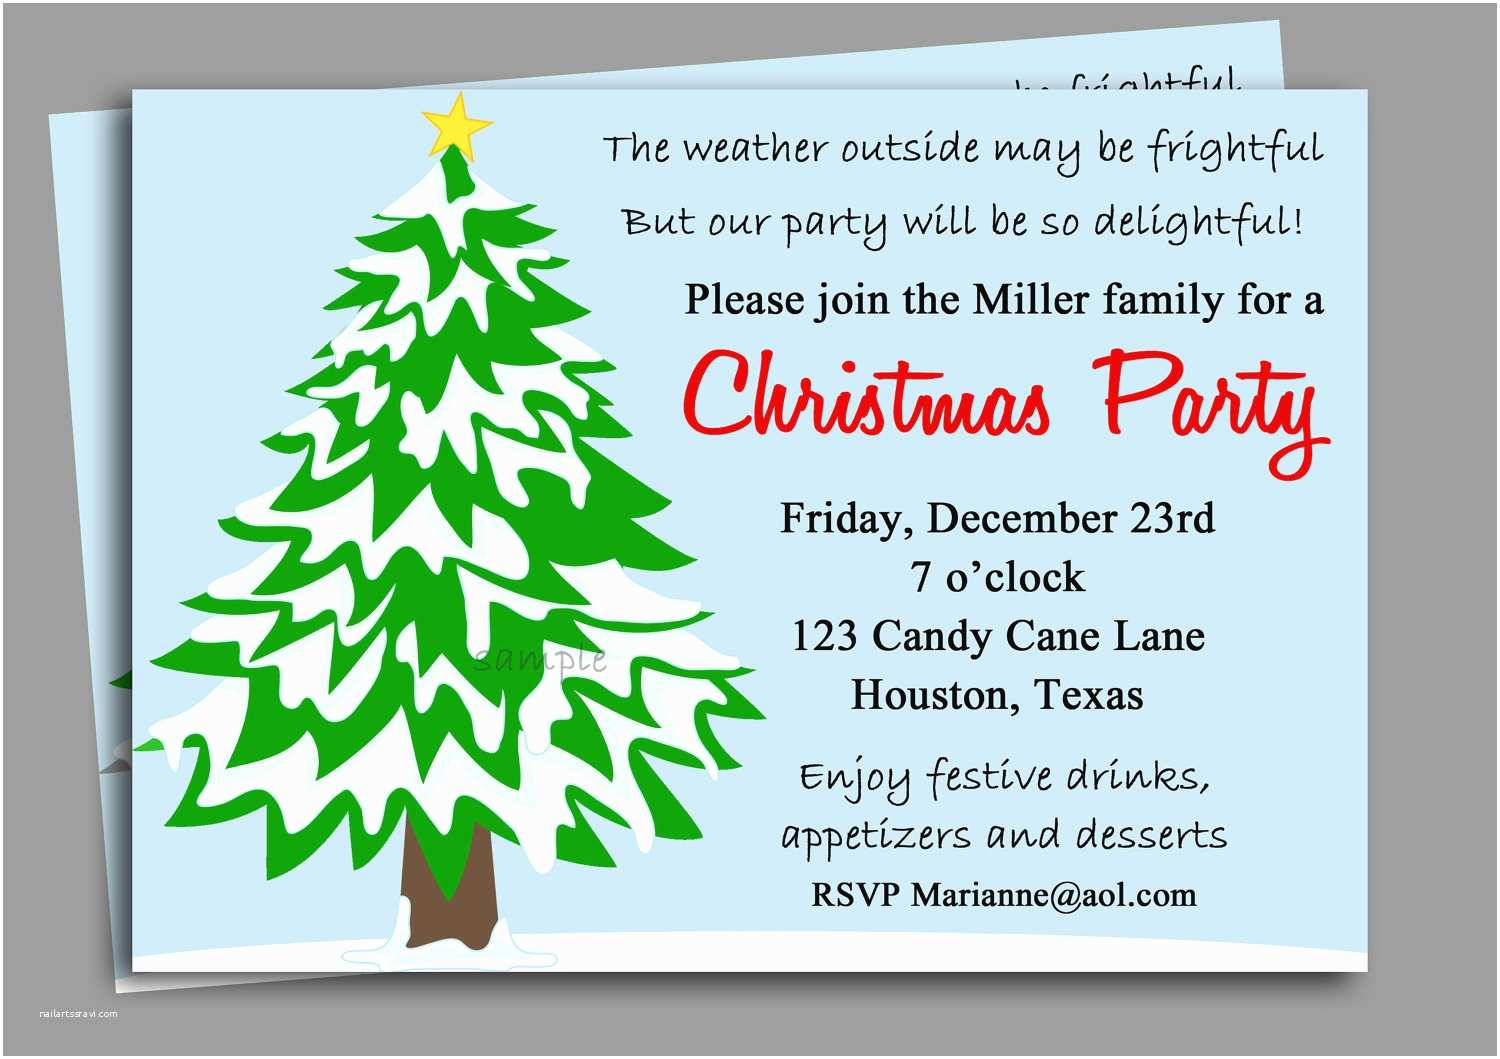 Corporate Party Invitation Wording Ideas Funny Christmas Party Invitation Wording Ideas